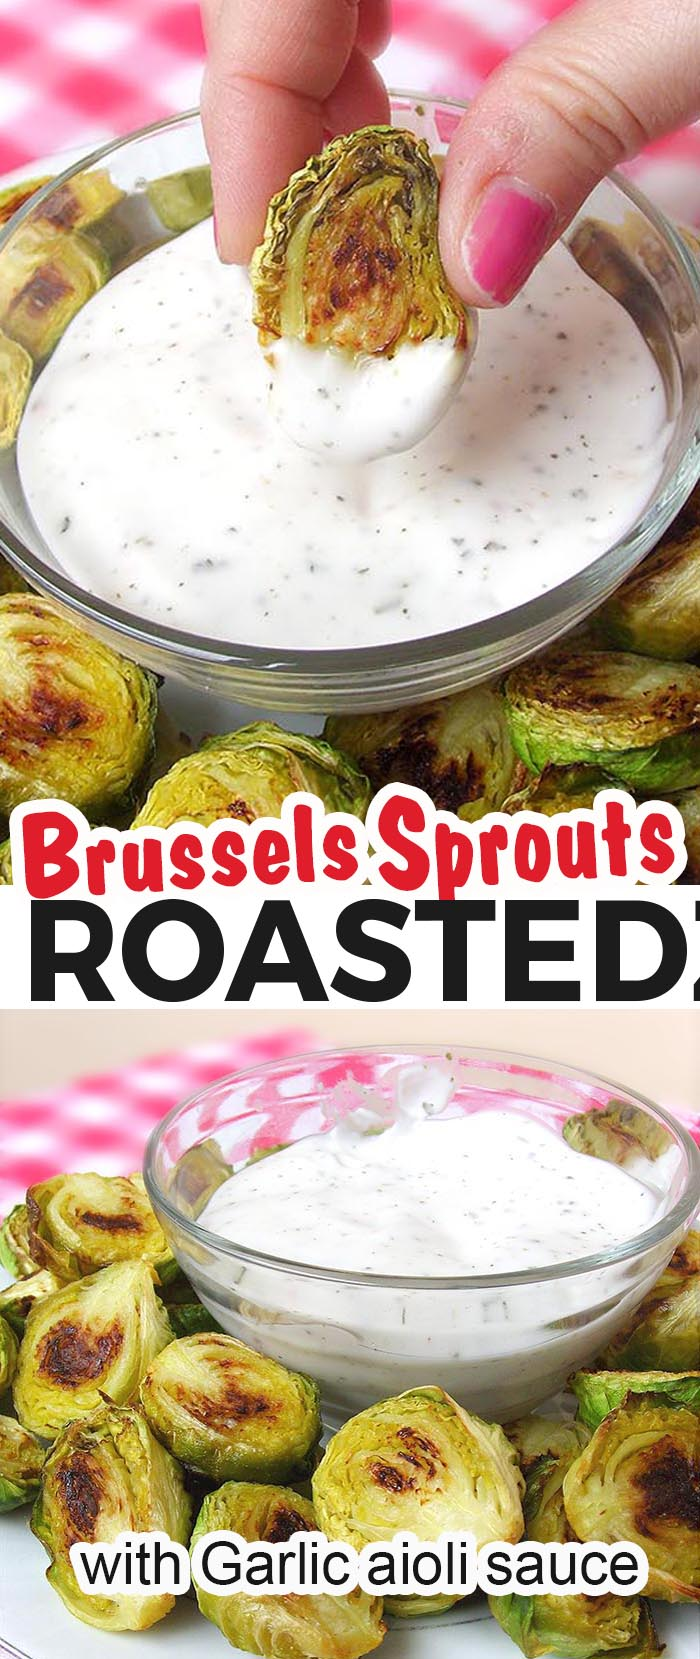 The Best Roasted Brussels Sprouts with Garlic Aioli. This is the only recipe you will ever need.  #brussels sprouts  #garlic aioli